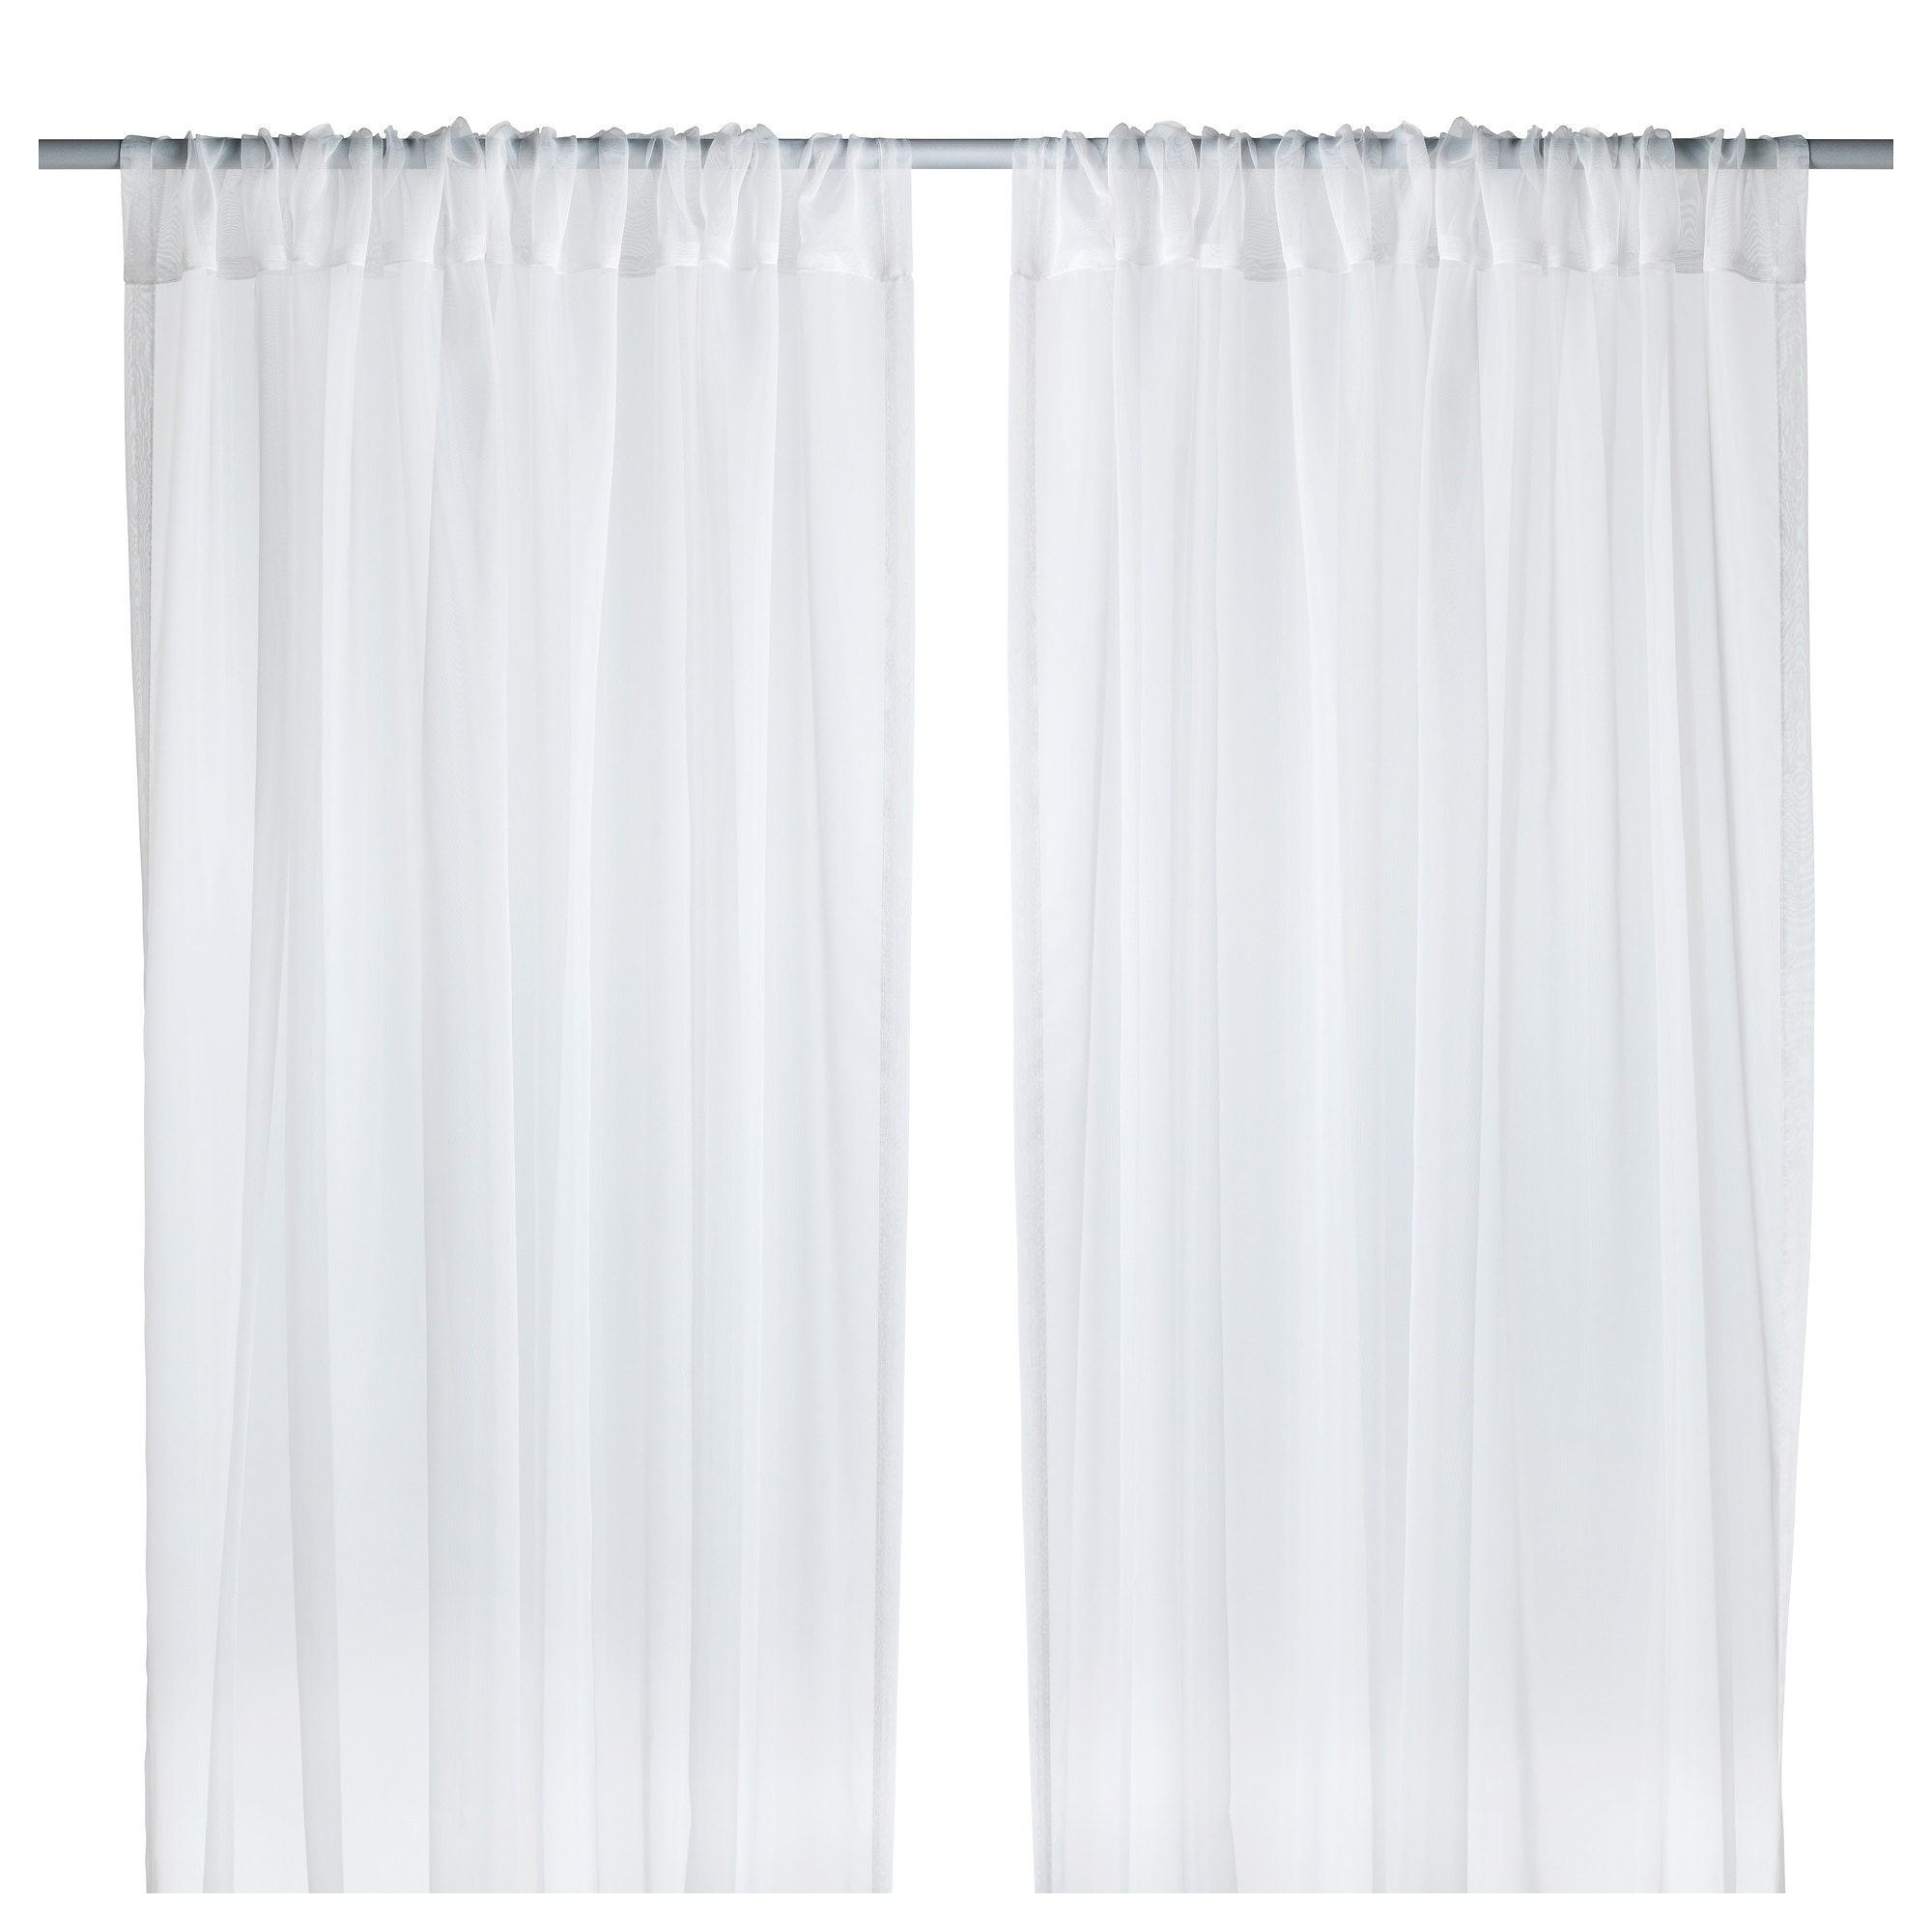 Black and white curtains bedroom - Teresia Sheer Curtains 1 Pair White Length 98 Width 57